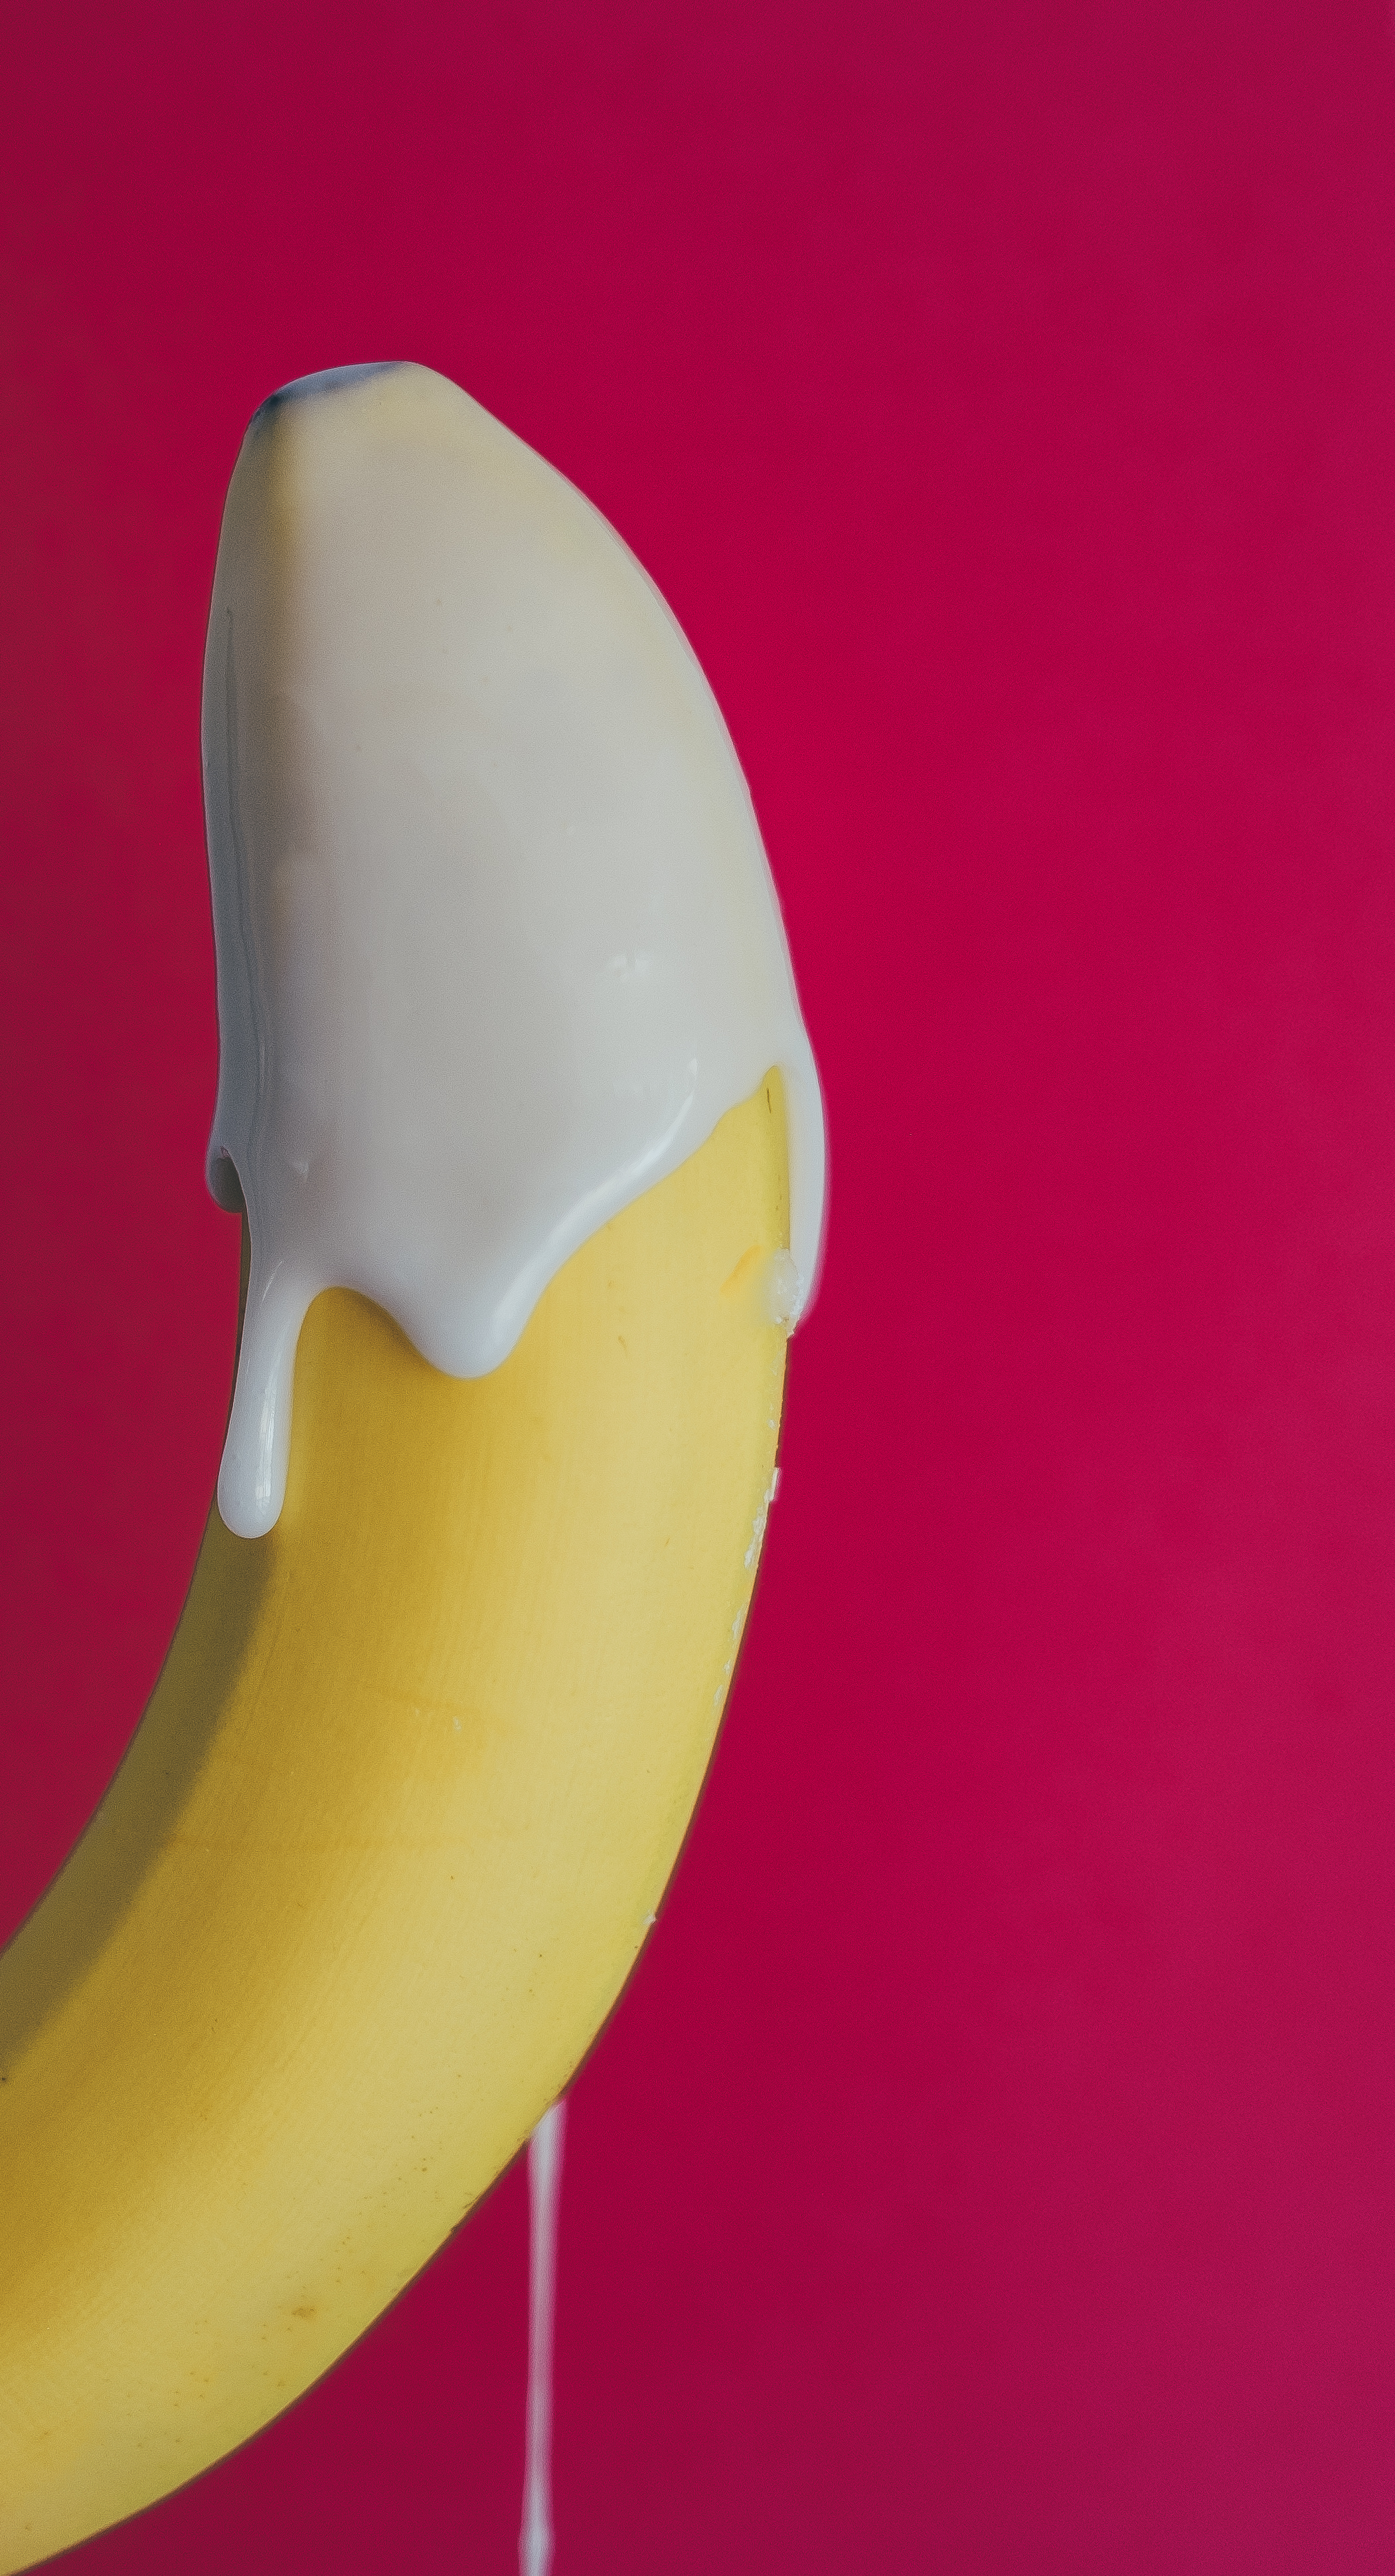 This isn't supposed to be a banana *wink wink